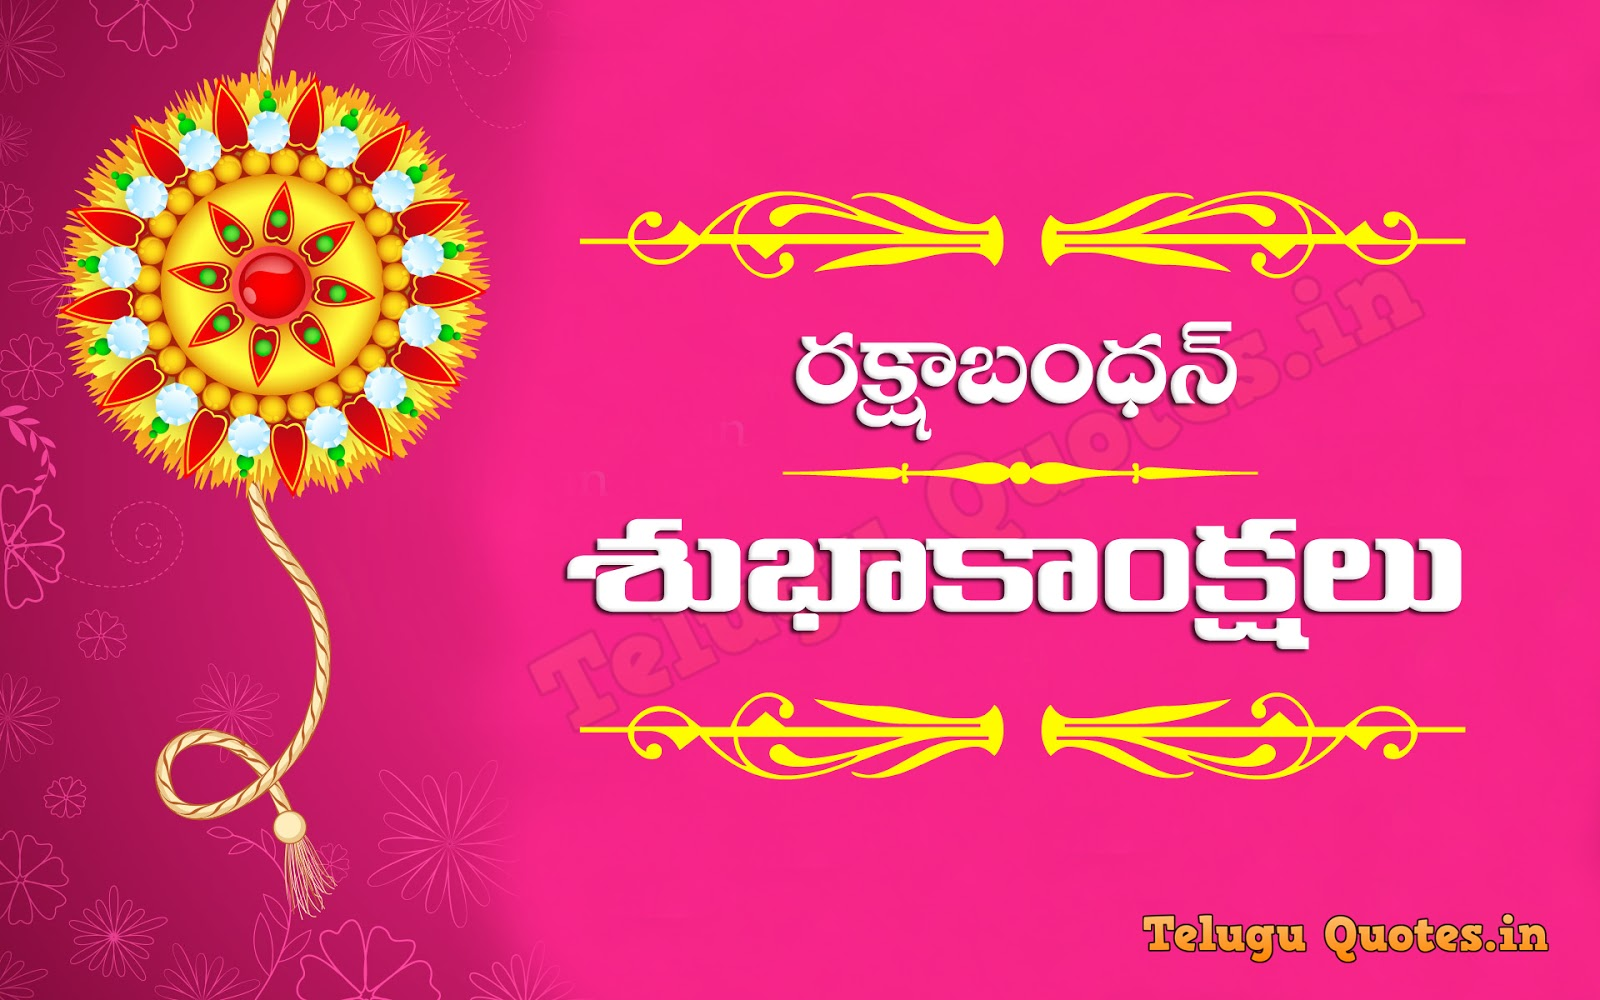 Happy raksha bandhan greetings cards images pictures in marathi telugu m4hsunfo